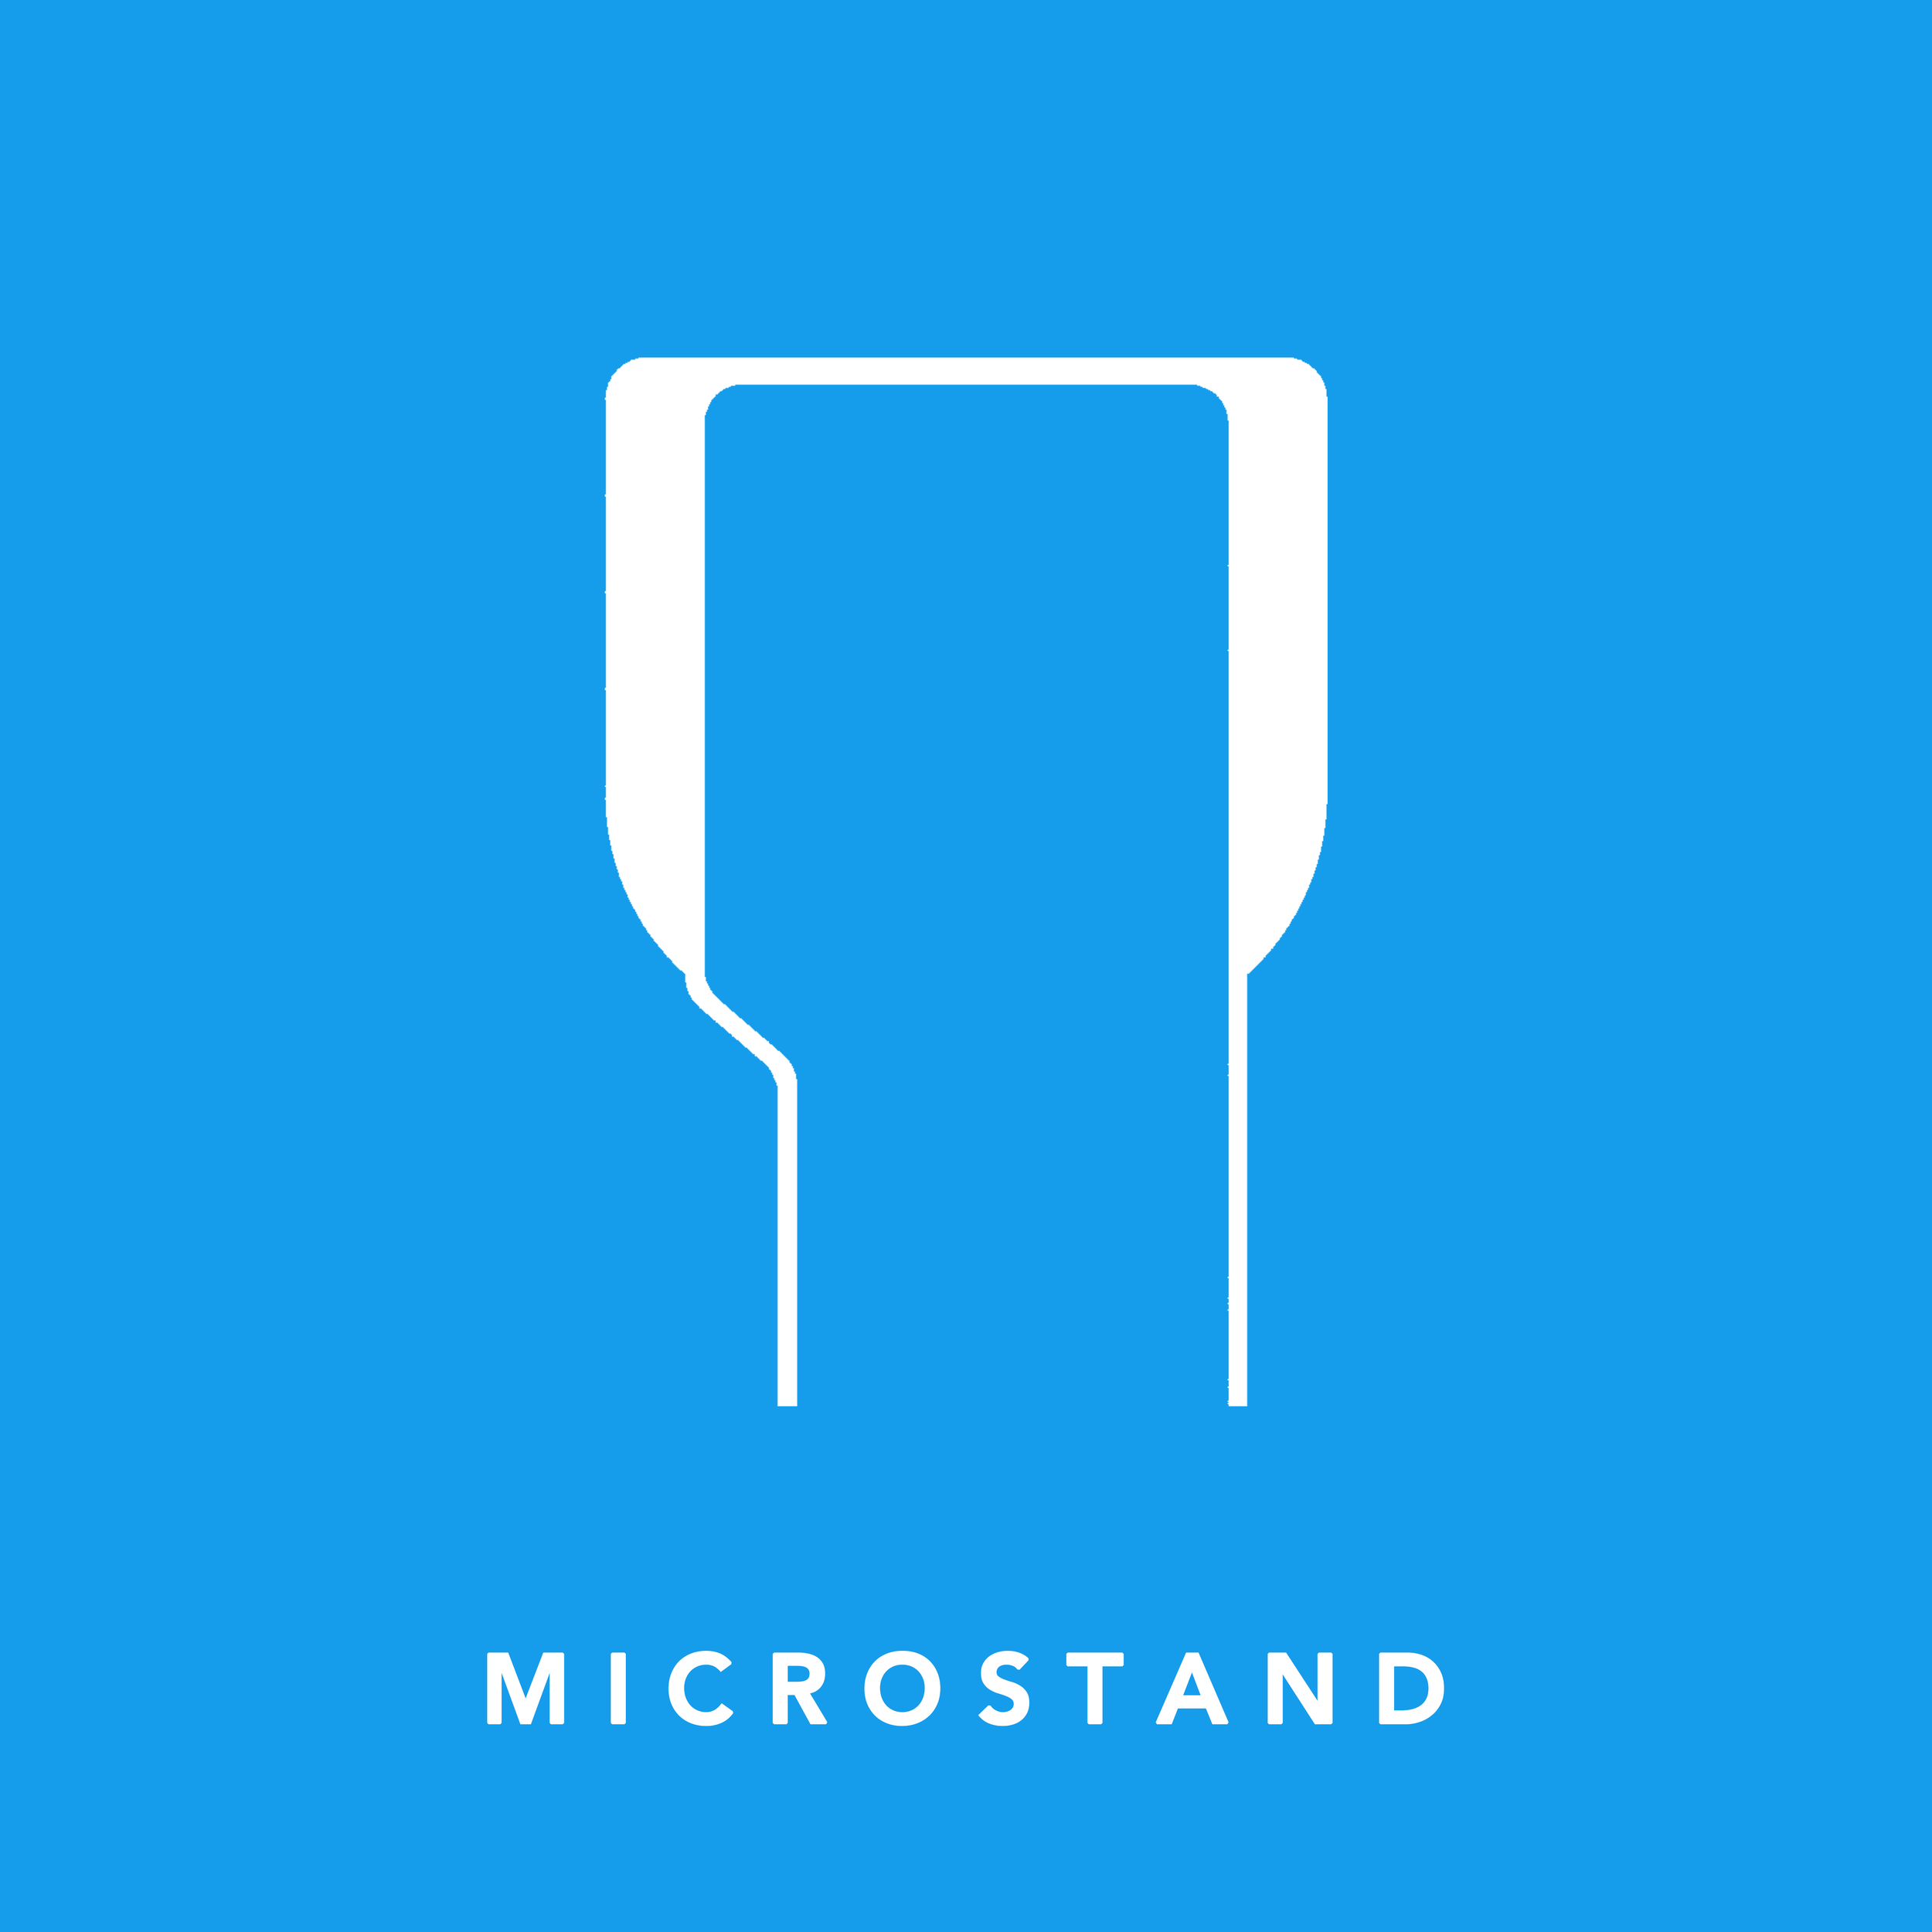 02. MICROSTAND.png